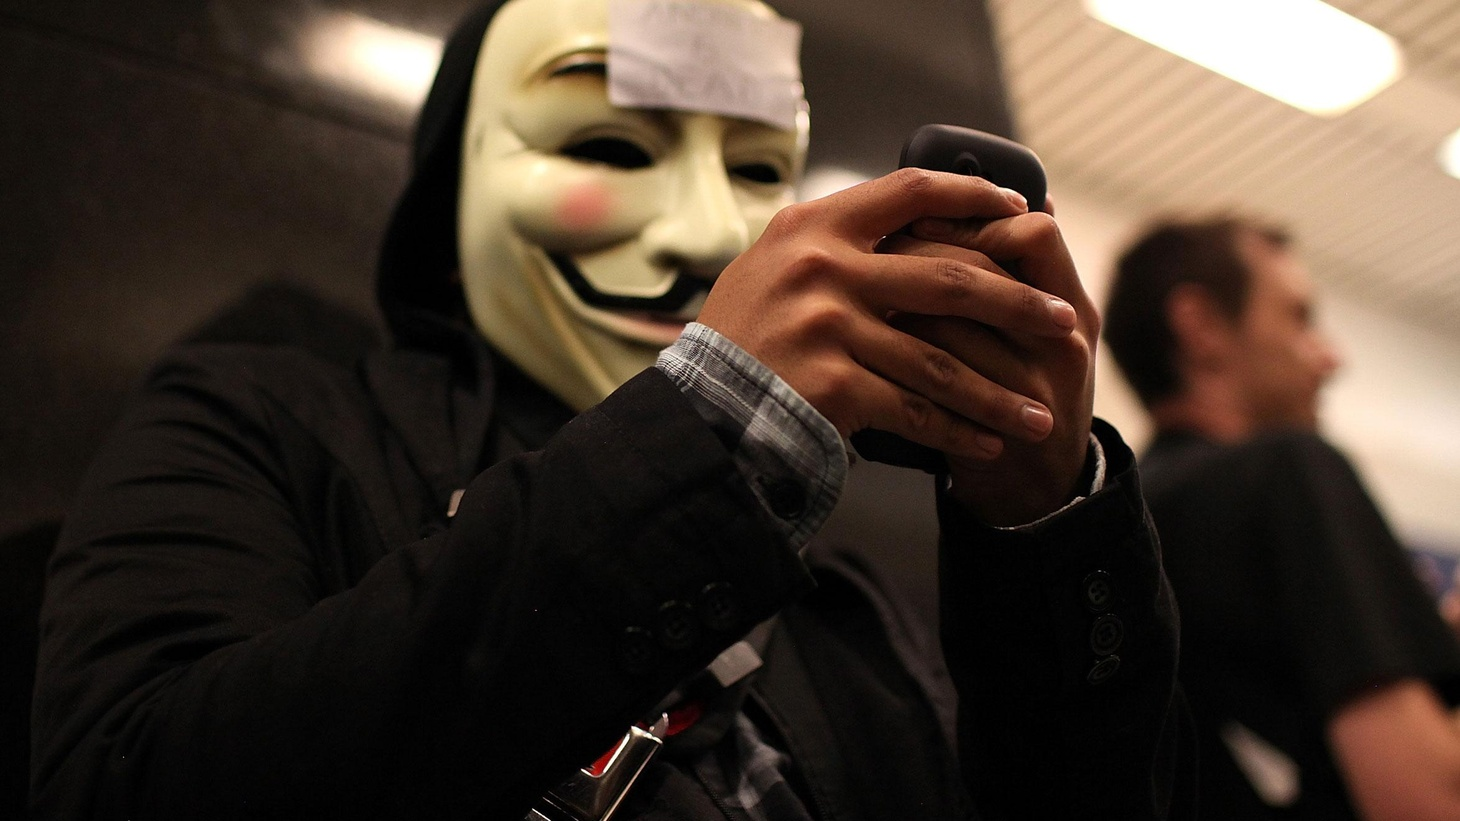 Social media have been a force for liberation in repressive countries. They've also been used to organize crime...